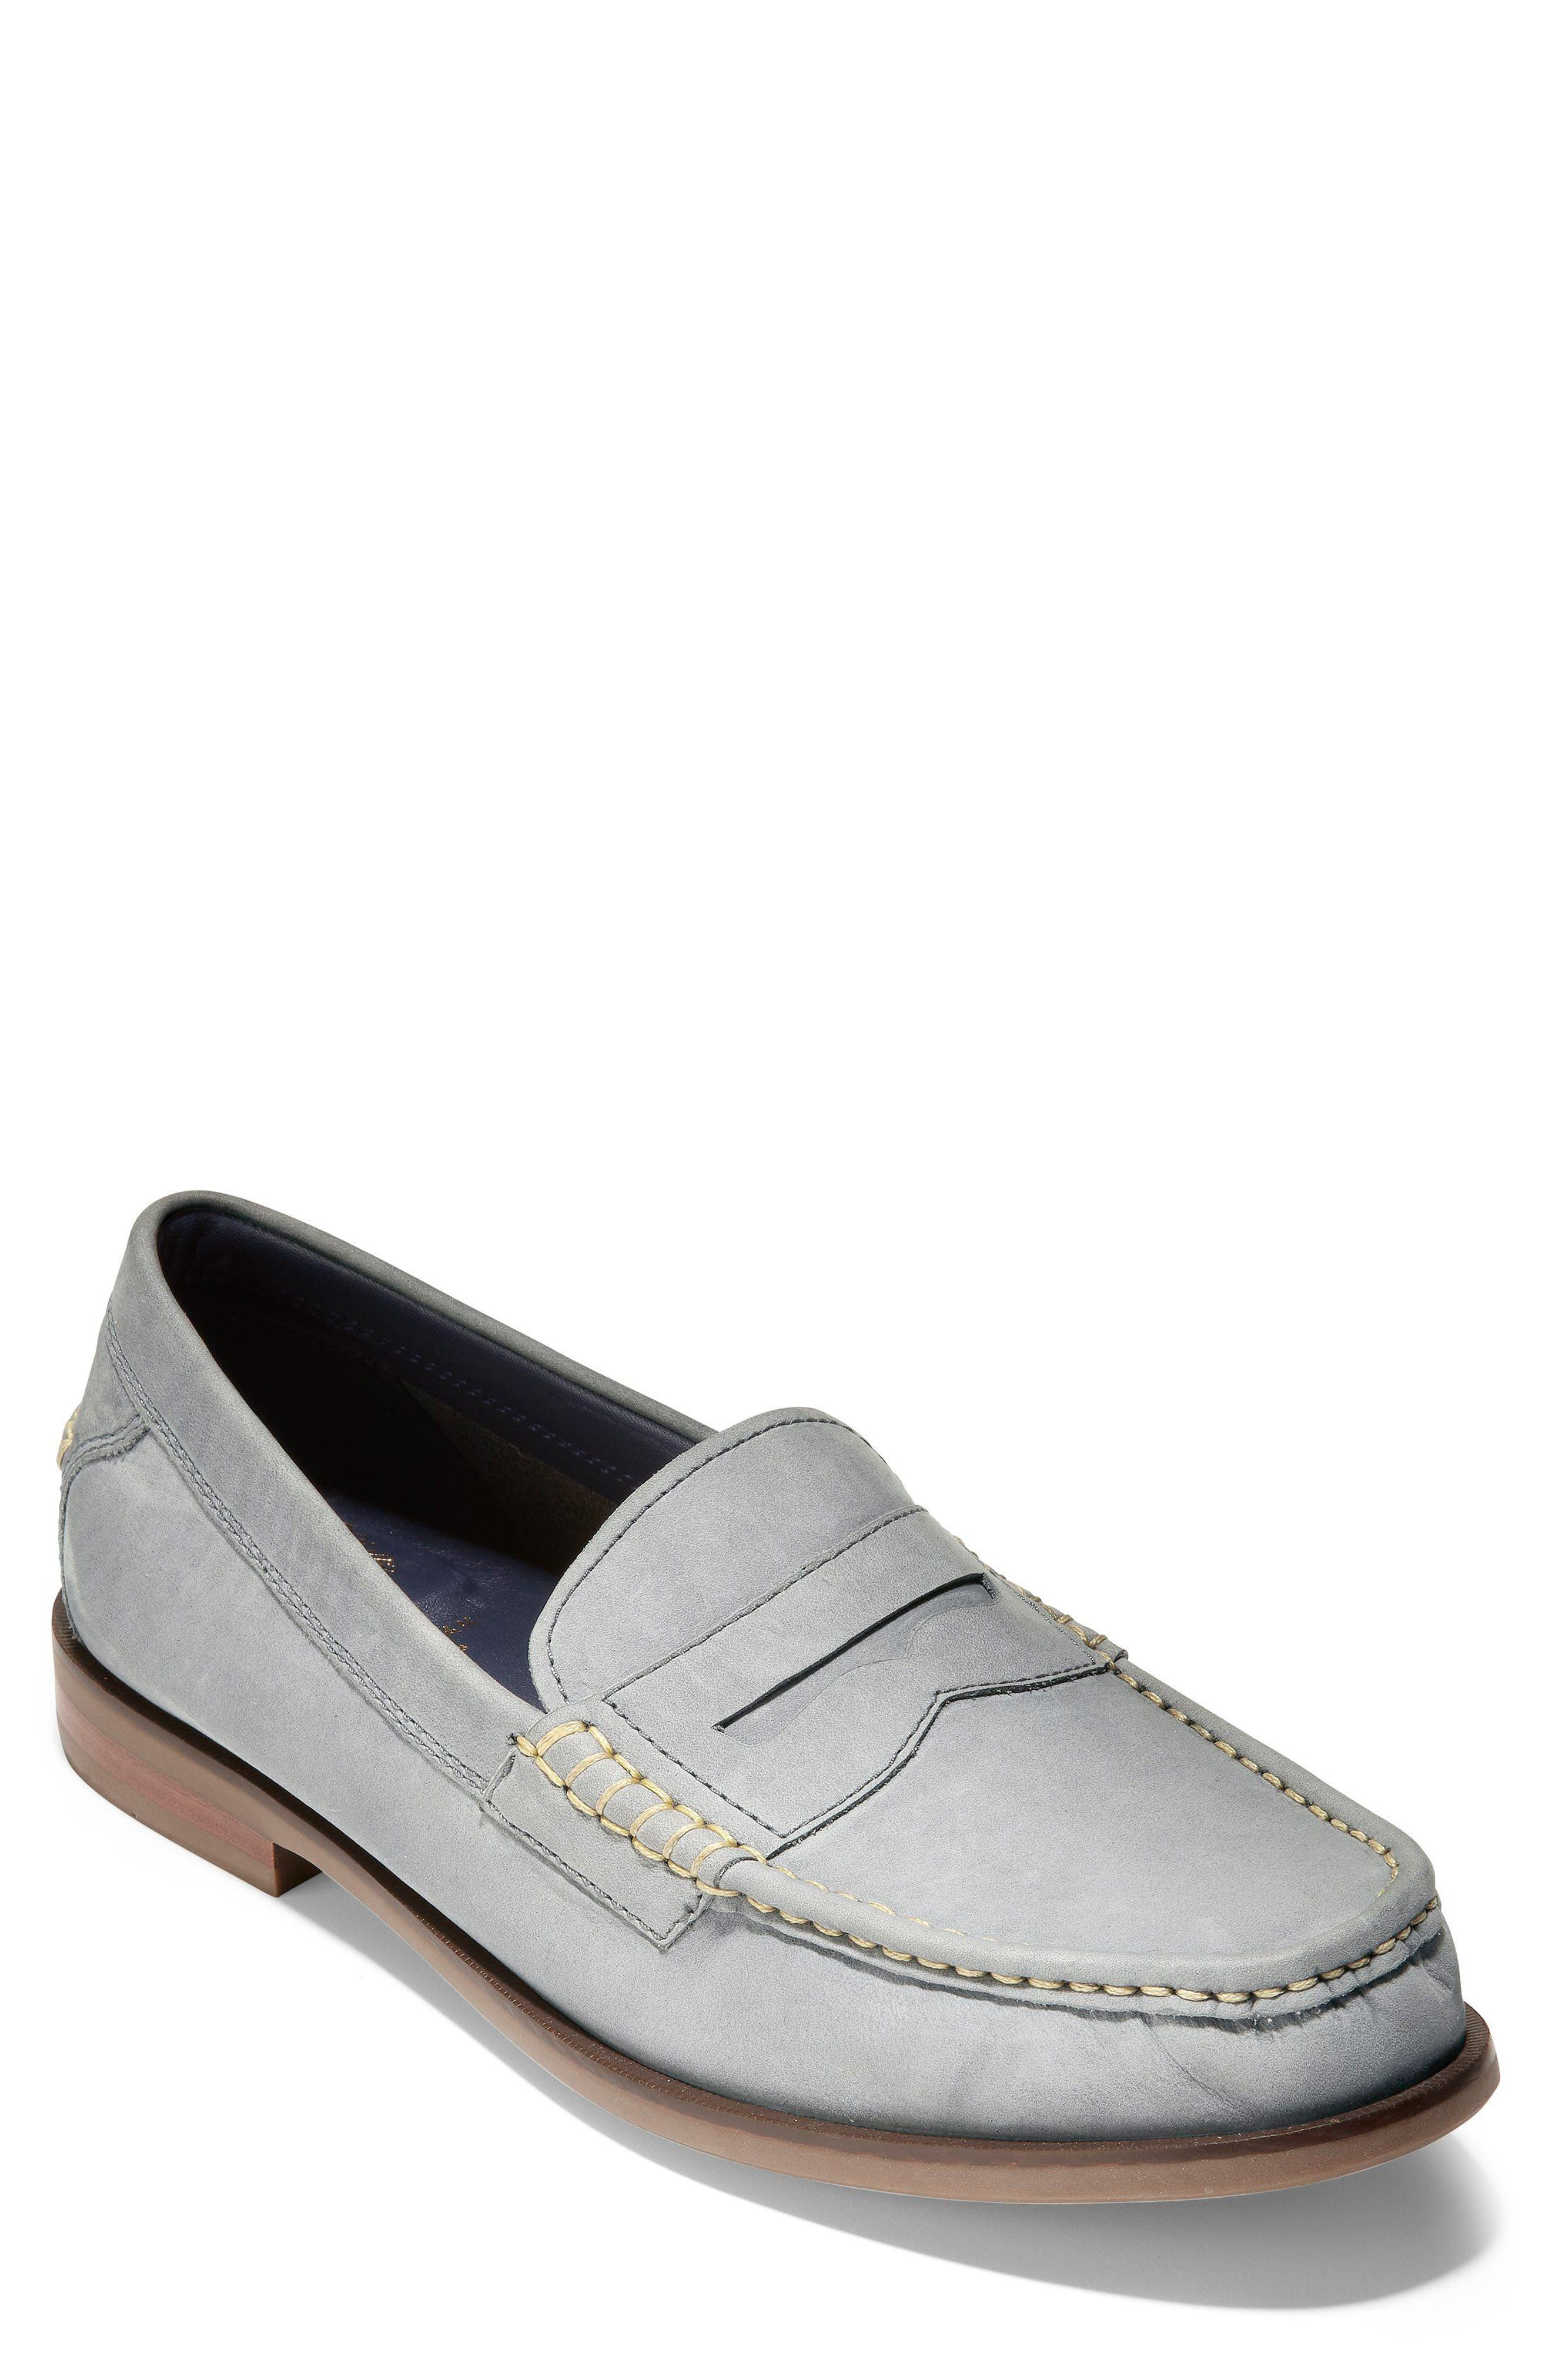 Pinch Friday Penny Loafer,                         Main,                         color, 020